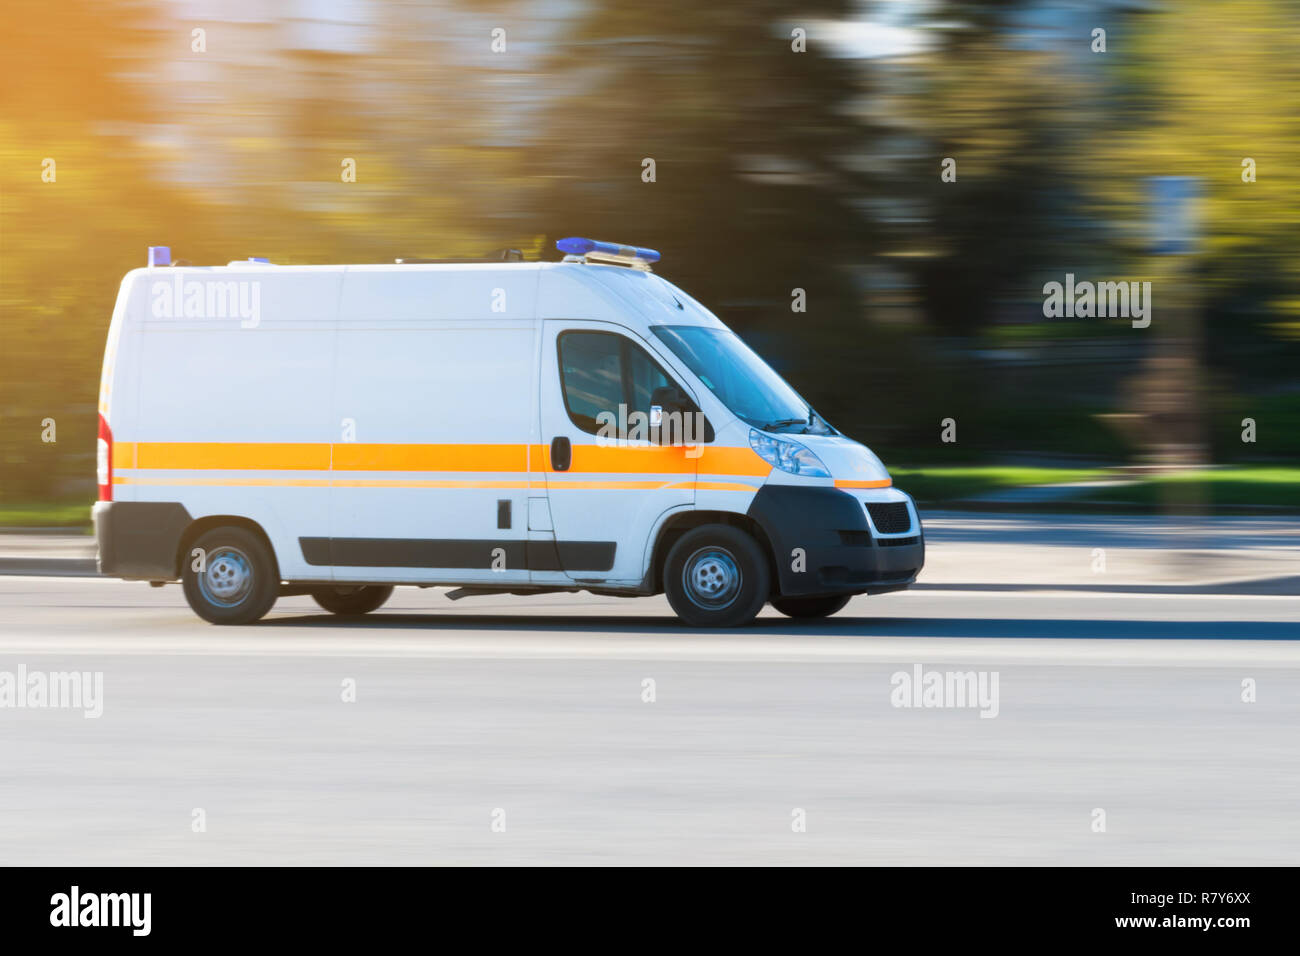 Ambulance in the city on a blurred background. ambulance on emergency call in motion blur. - Stock Image